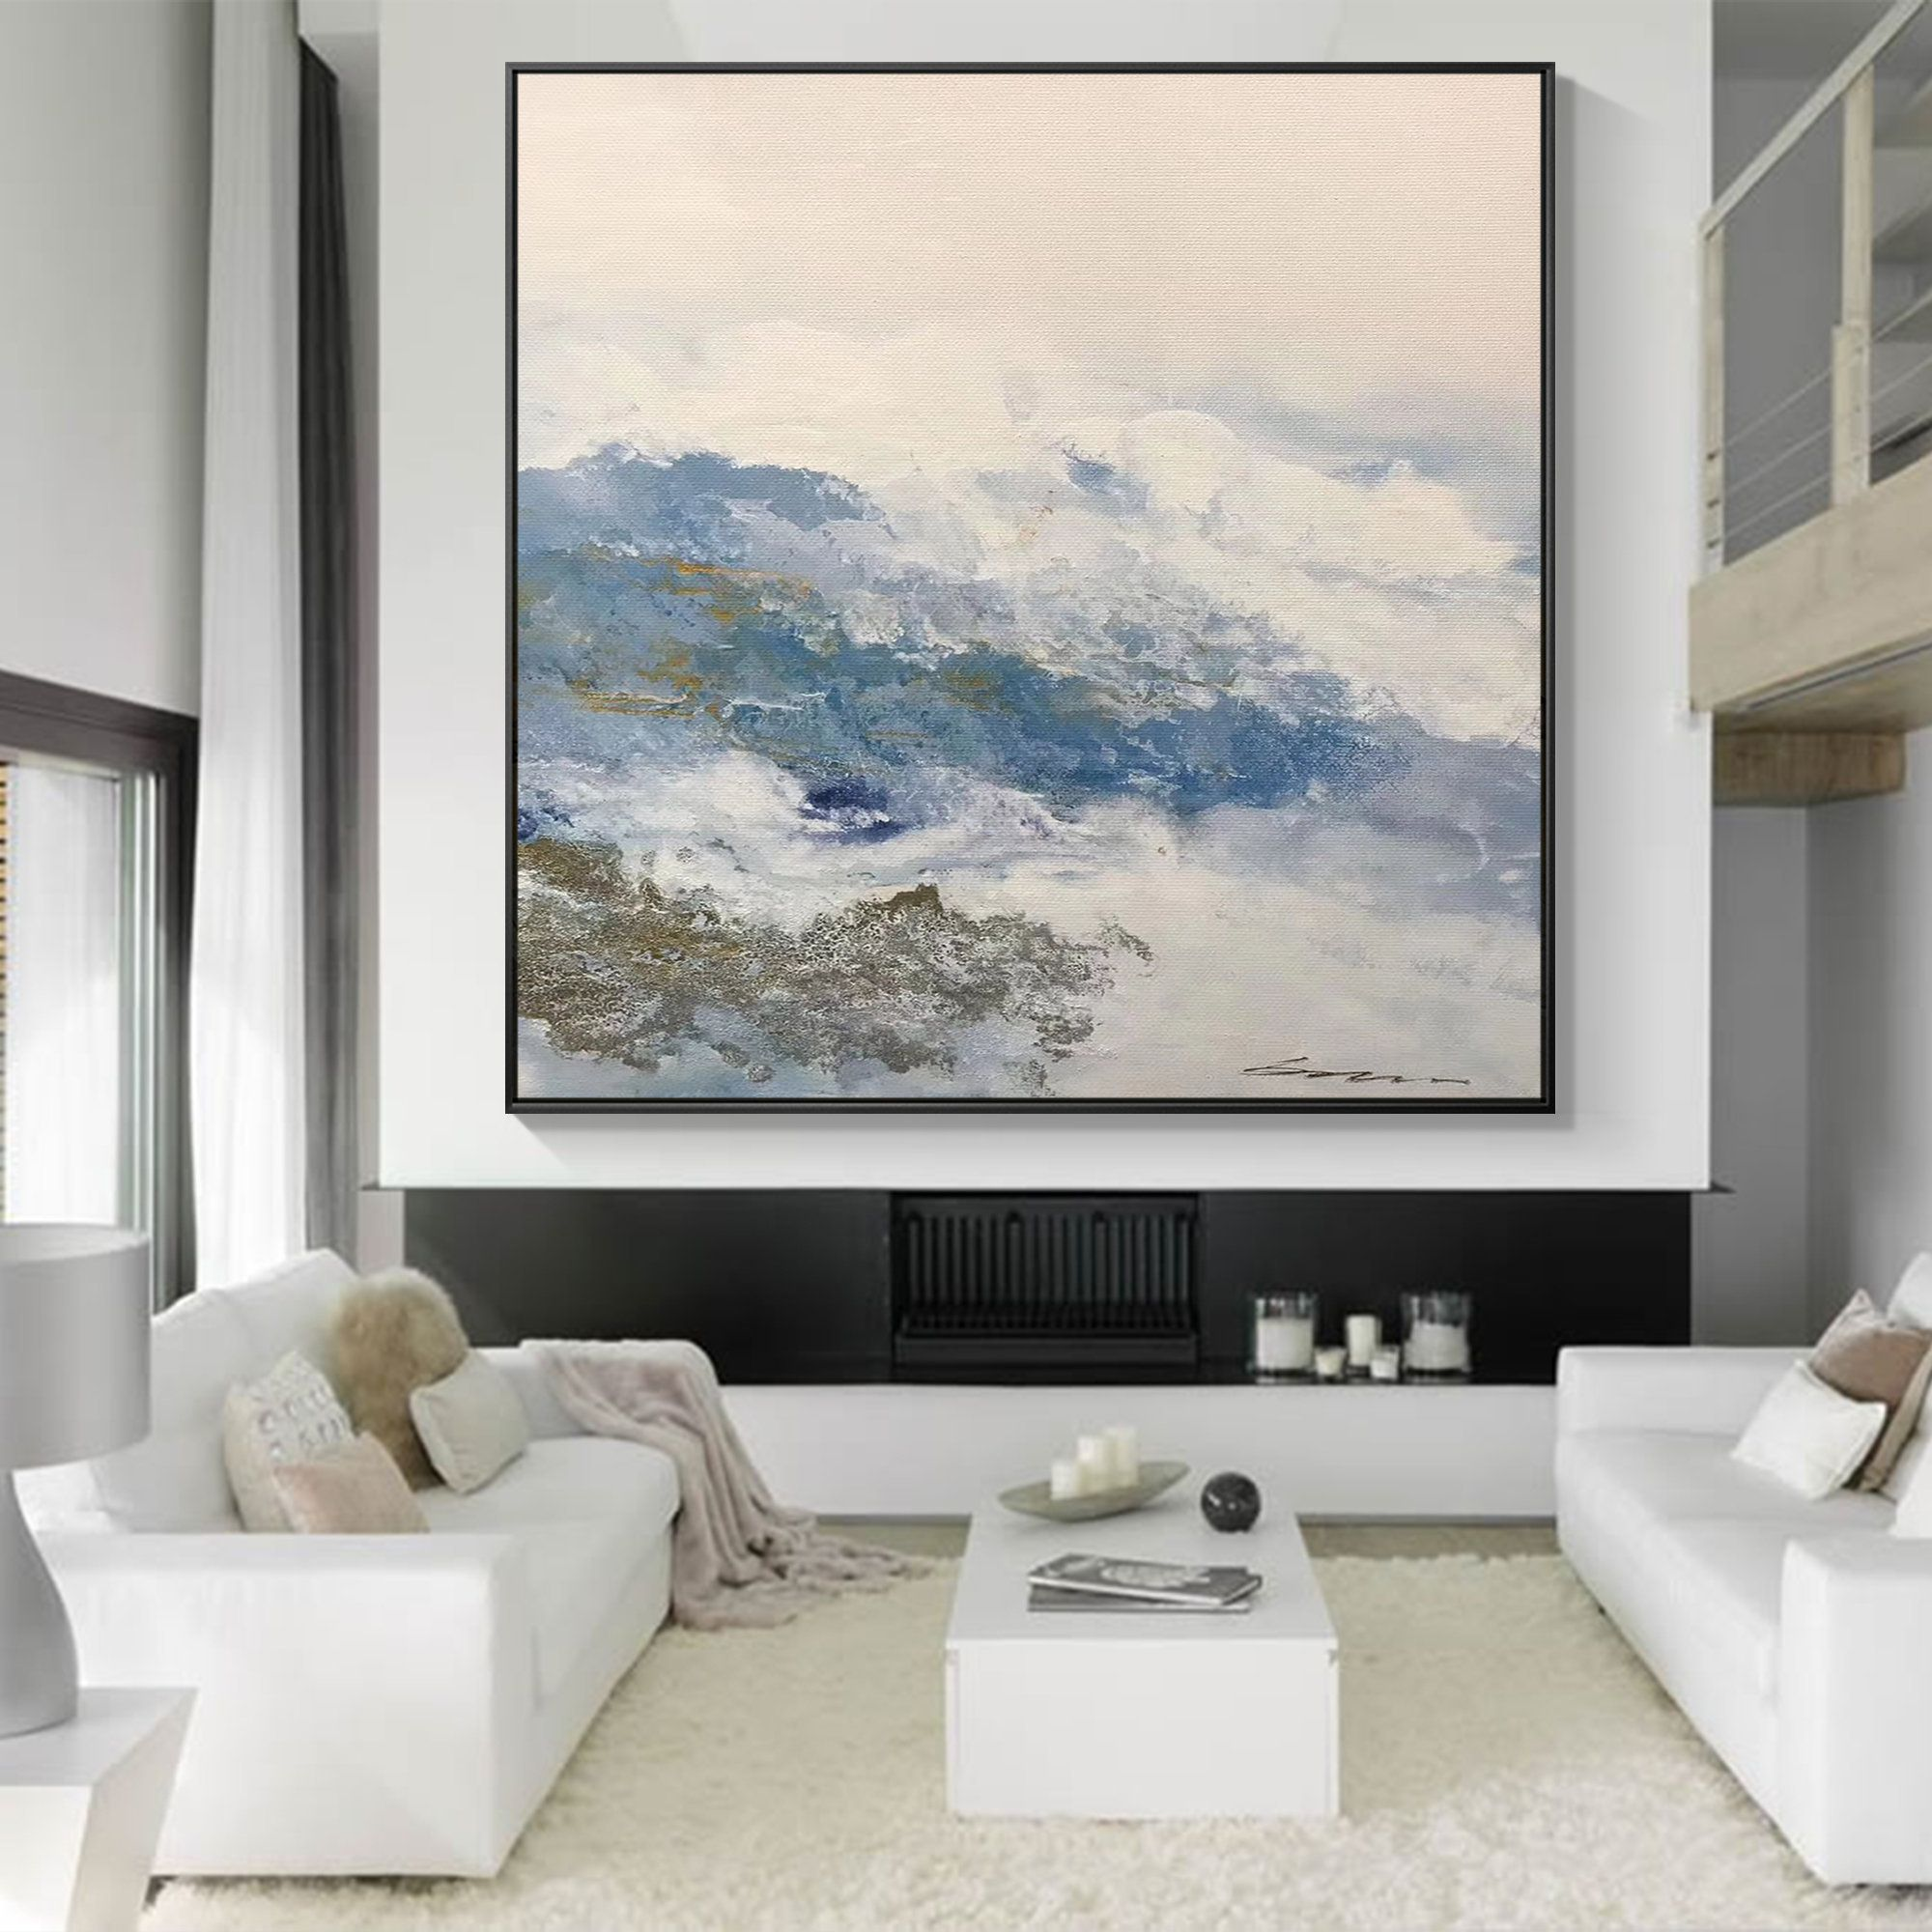 Frame Painting Modern Large Wall Art Textured Painting Acrylic Mountain Wall Art Framed Abstr Large Abstract Wall Art Large Modern Wall Art Modern Art Abstract